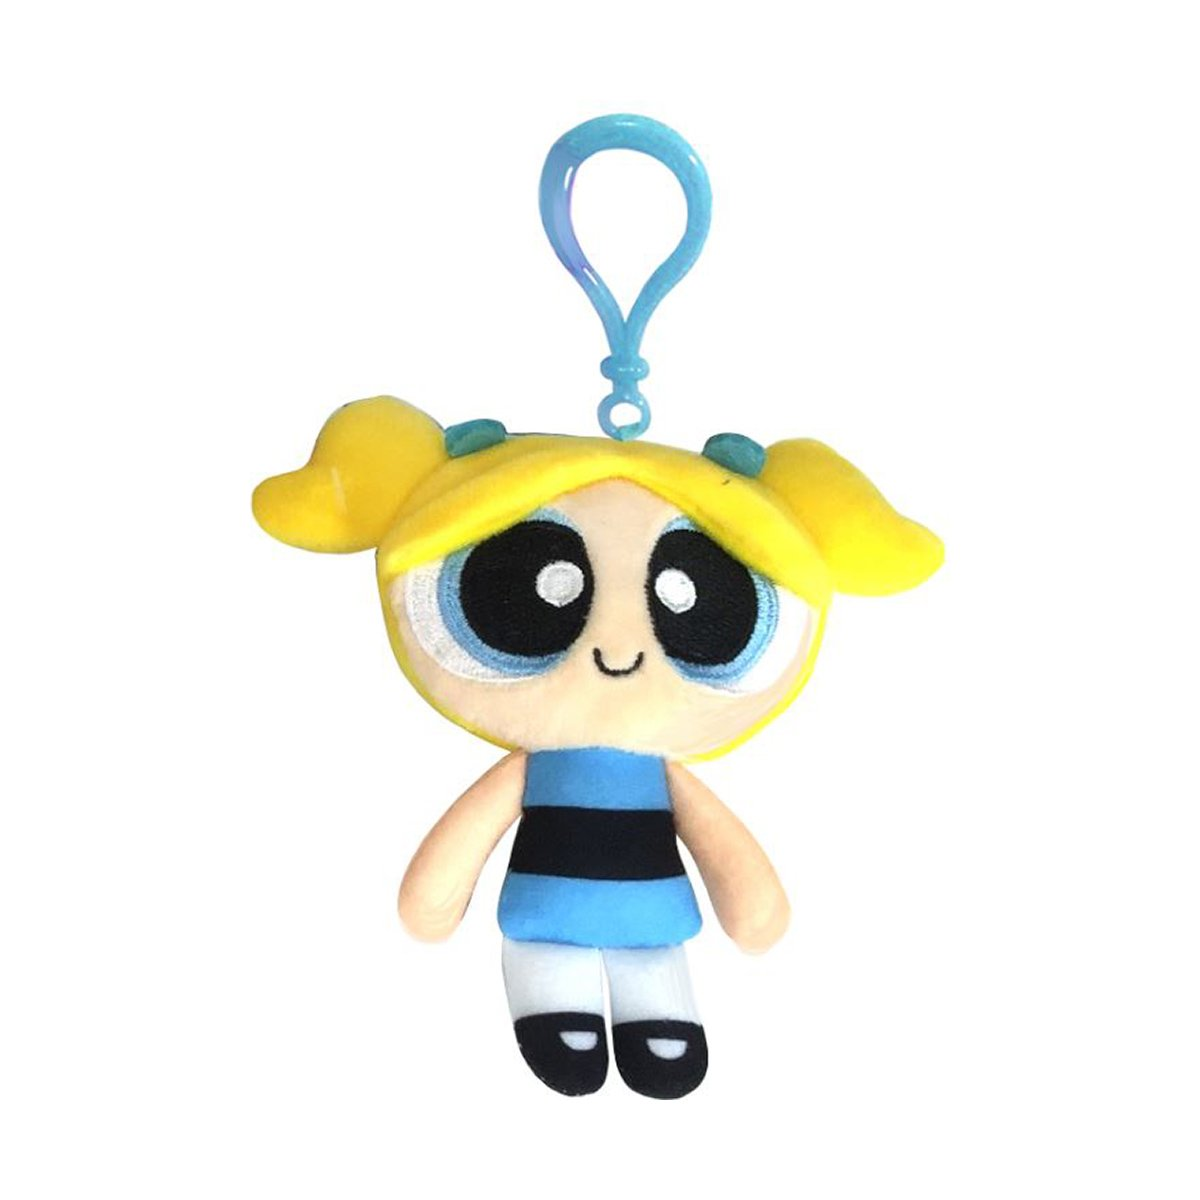 Breloc cu figurina Powerpuff Girls Bubbles